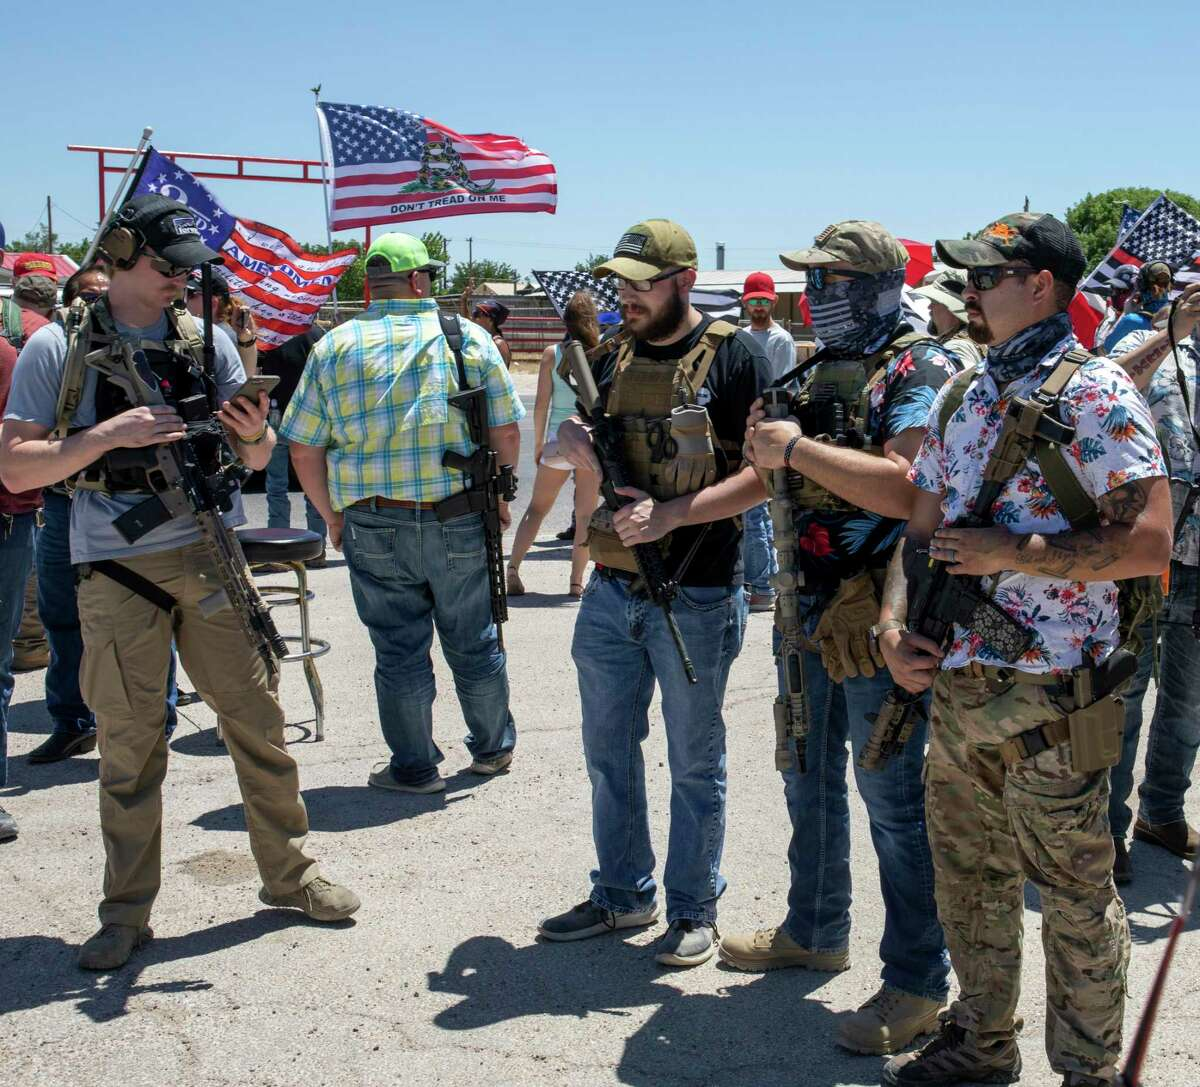 Members of Open Carry Texas rally in June 2020 in West Odessa. A bill allowing unlicensed people to openly carry guns has a good chance of becoming law in Texas.